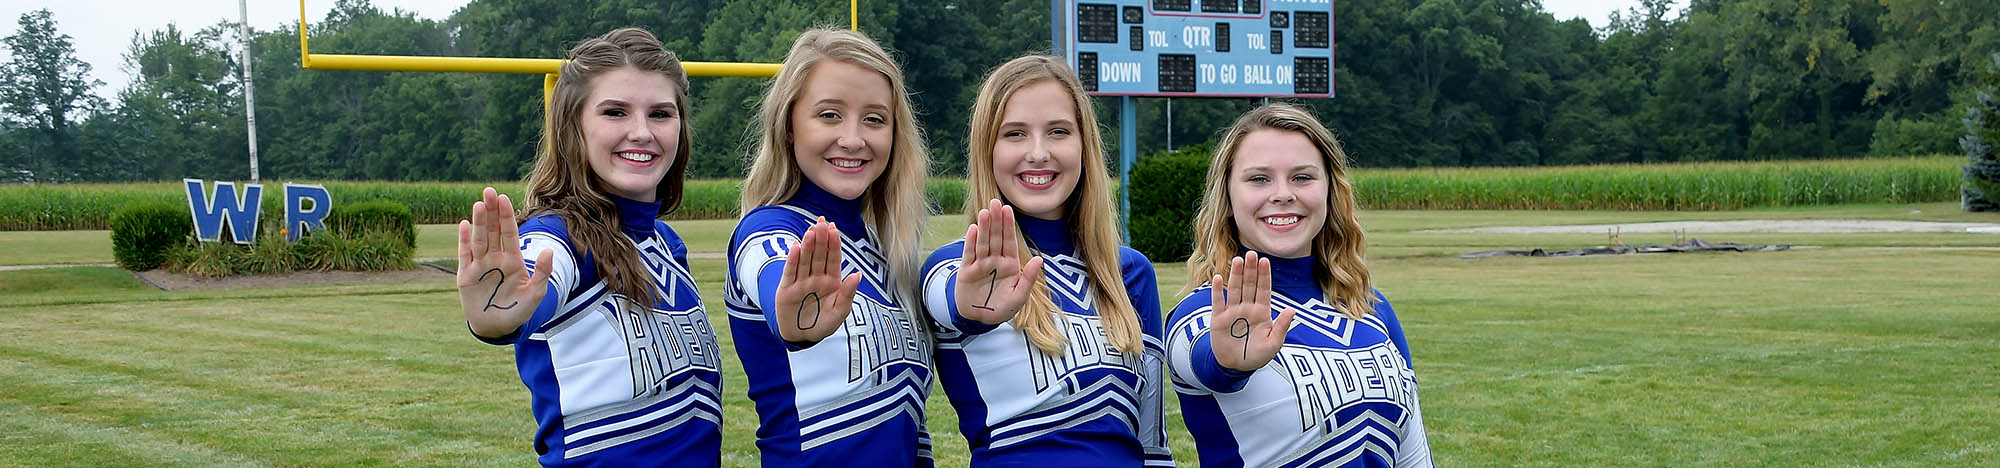 Four happy western reserve cheerleaders